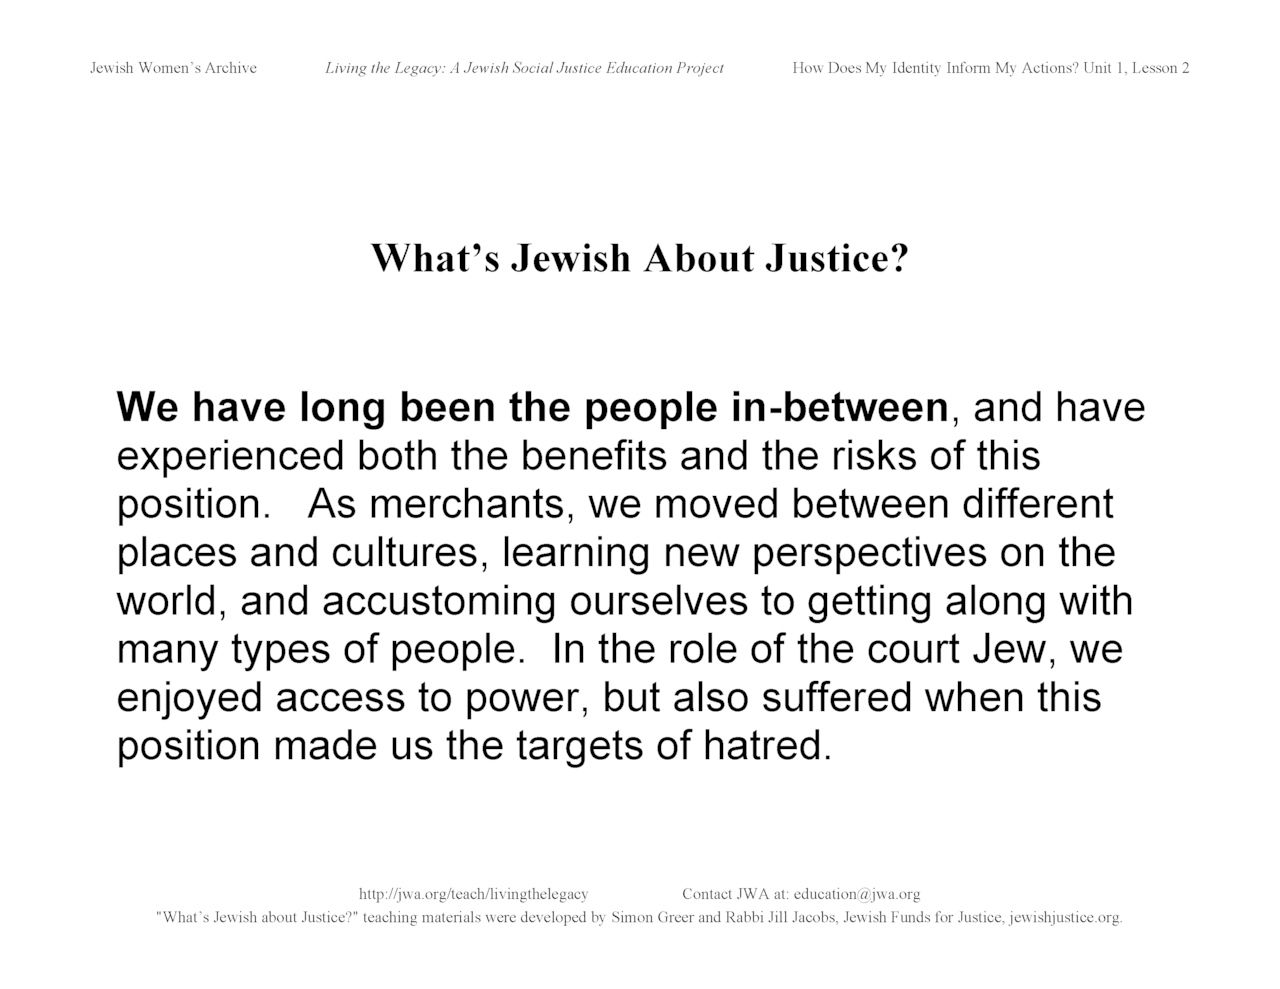 """What's Jewish About Justice?"" signs: We have long been the people in-between"